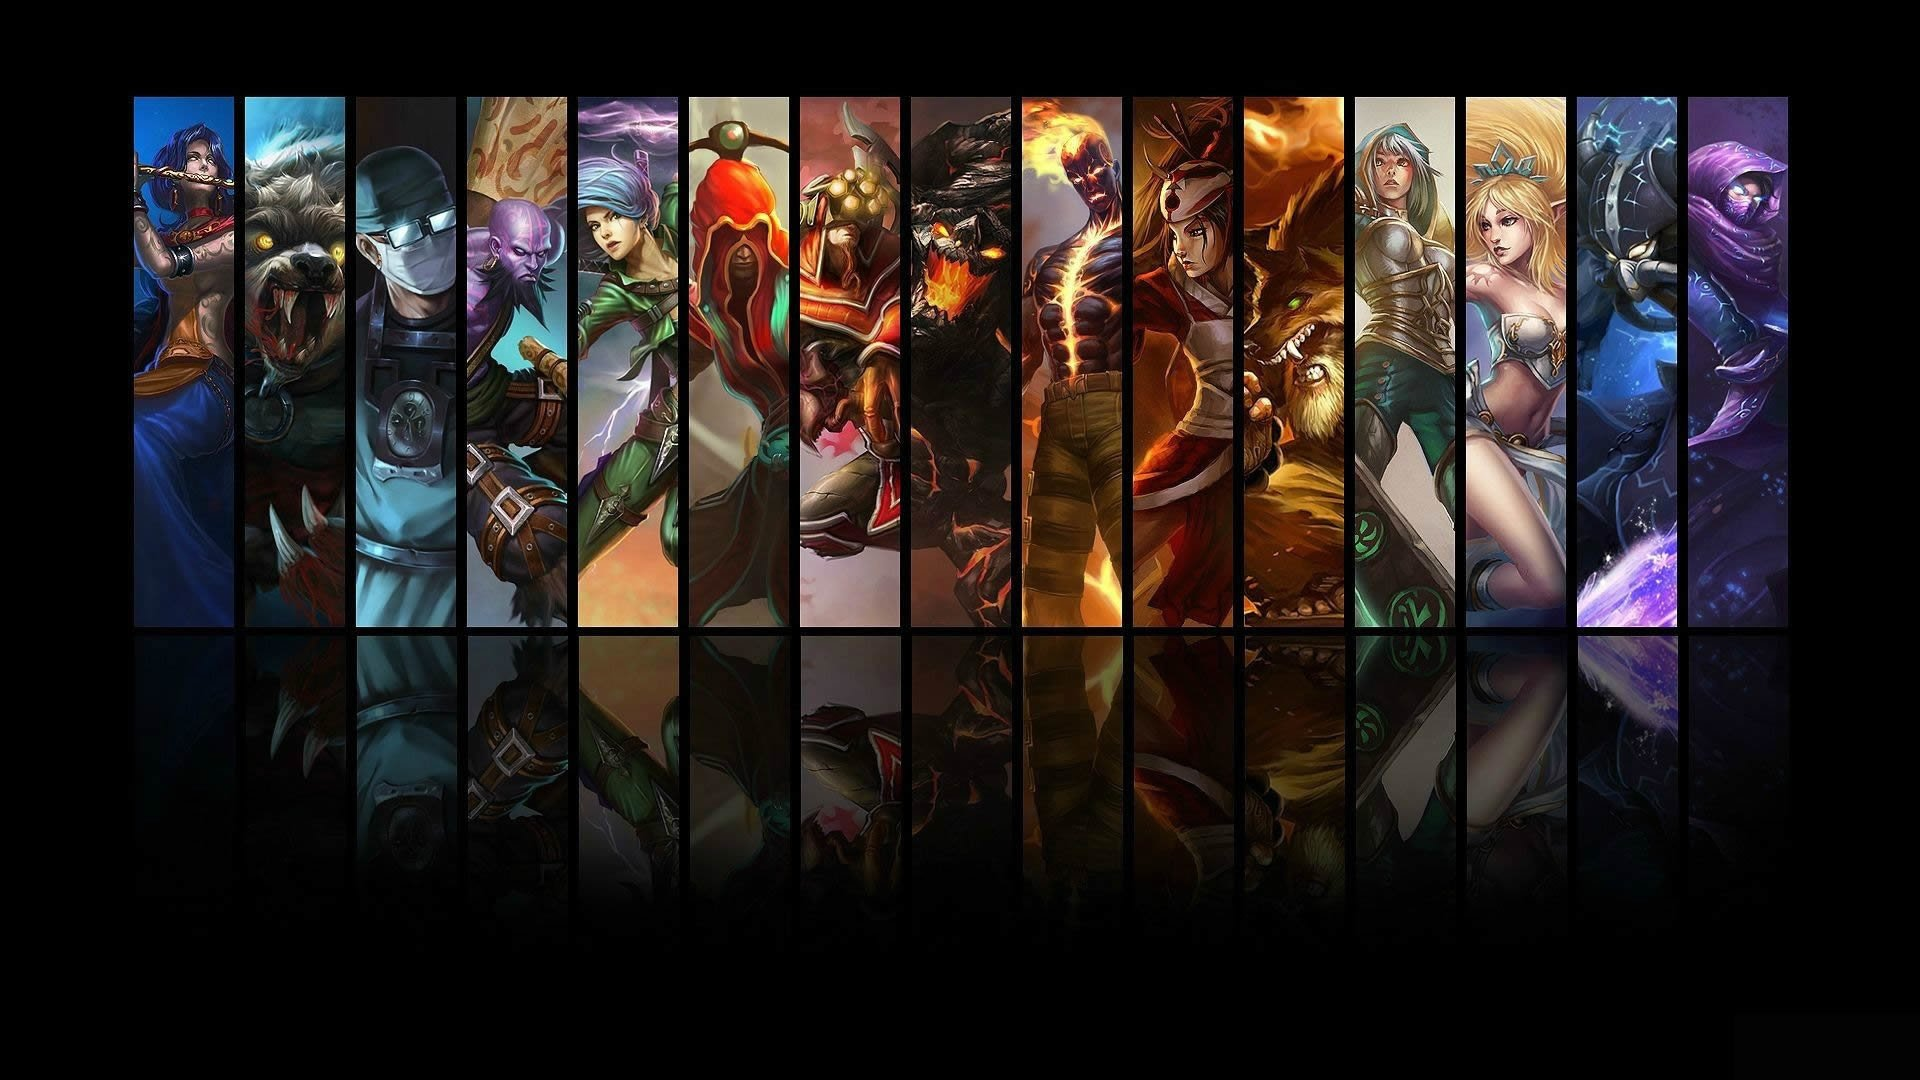 Video Game - League Of Legends  Shen (League Of Legends) Soraka (League Of Legends) Malzahar (League Of Legends) Brand (League of Legends) Janna (League Of Legends) Katarina (League Of Legends) Master Yi (League Of Legends) Ryze (League Of Legends) Kassadin (League Of Legends) Malphite (League of Legends) Warwick (League Of Legends) Akali (League Of Legends) Udyr (League Of Legends) Lee Sin (League Of Legends) Riven (League Of Legends) Wallpaper